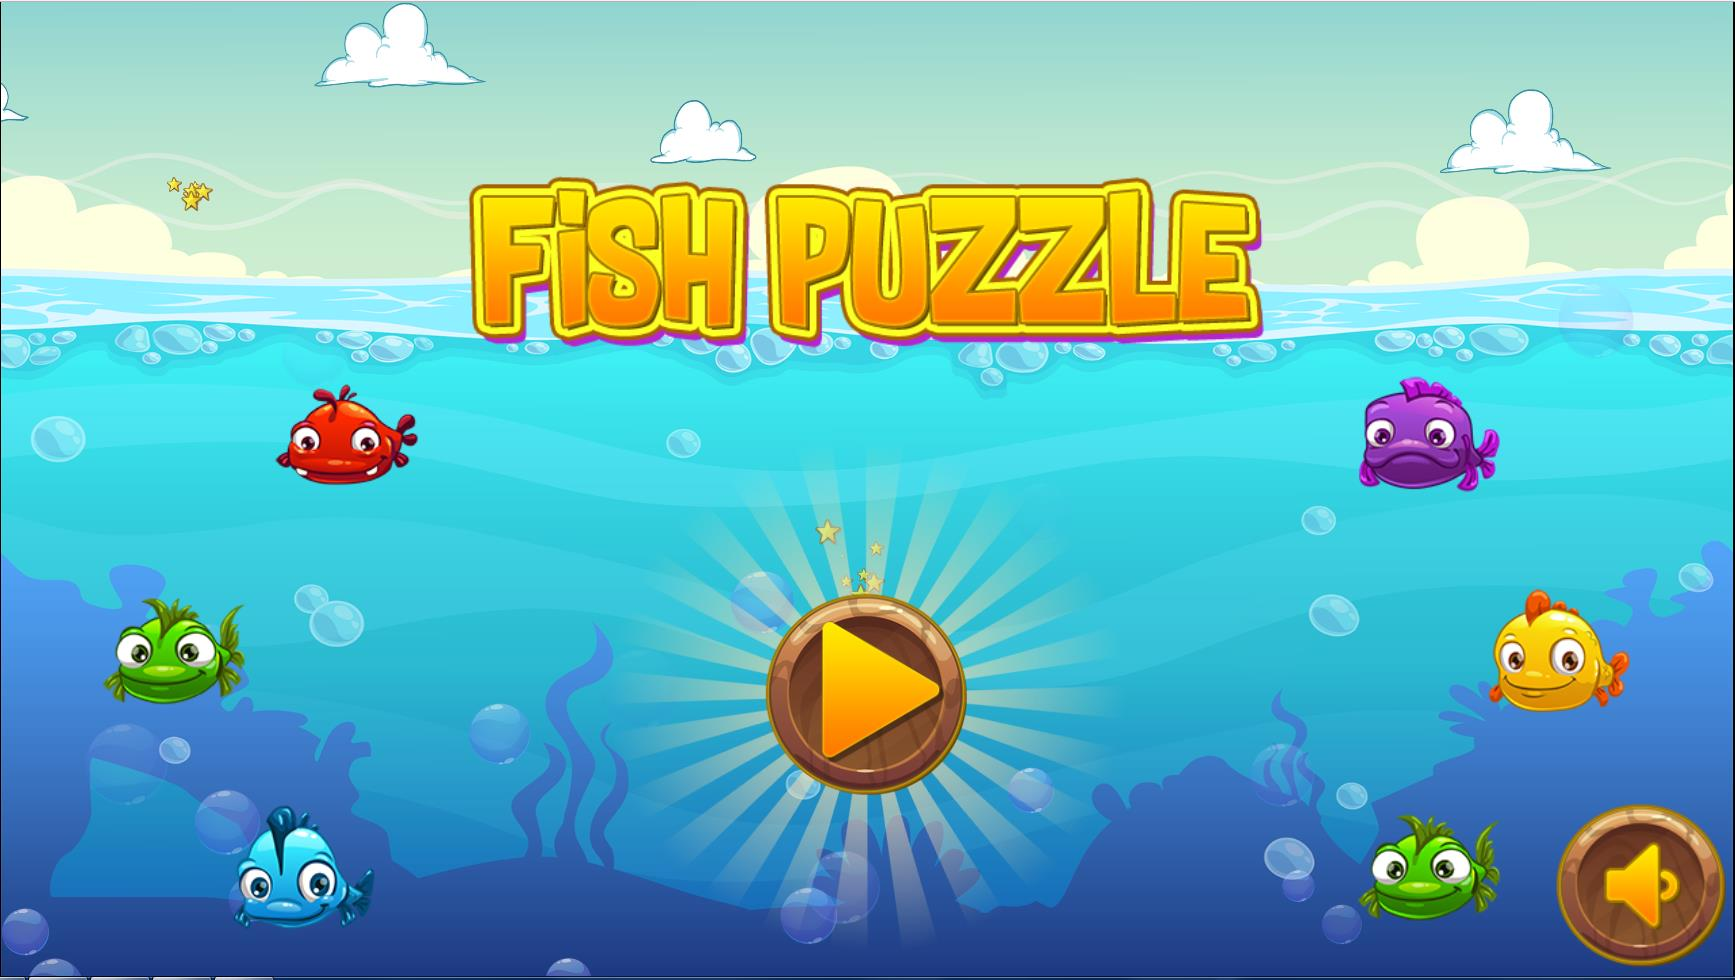 Fish puzzle html5 game by gamingpro codecanyon for Fishing net crossword clue